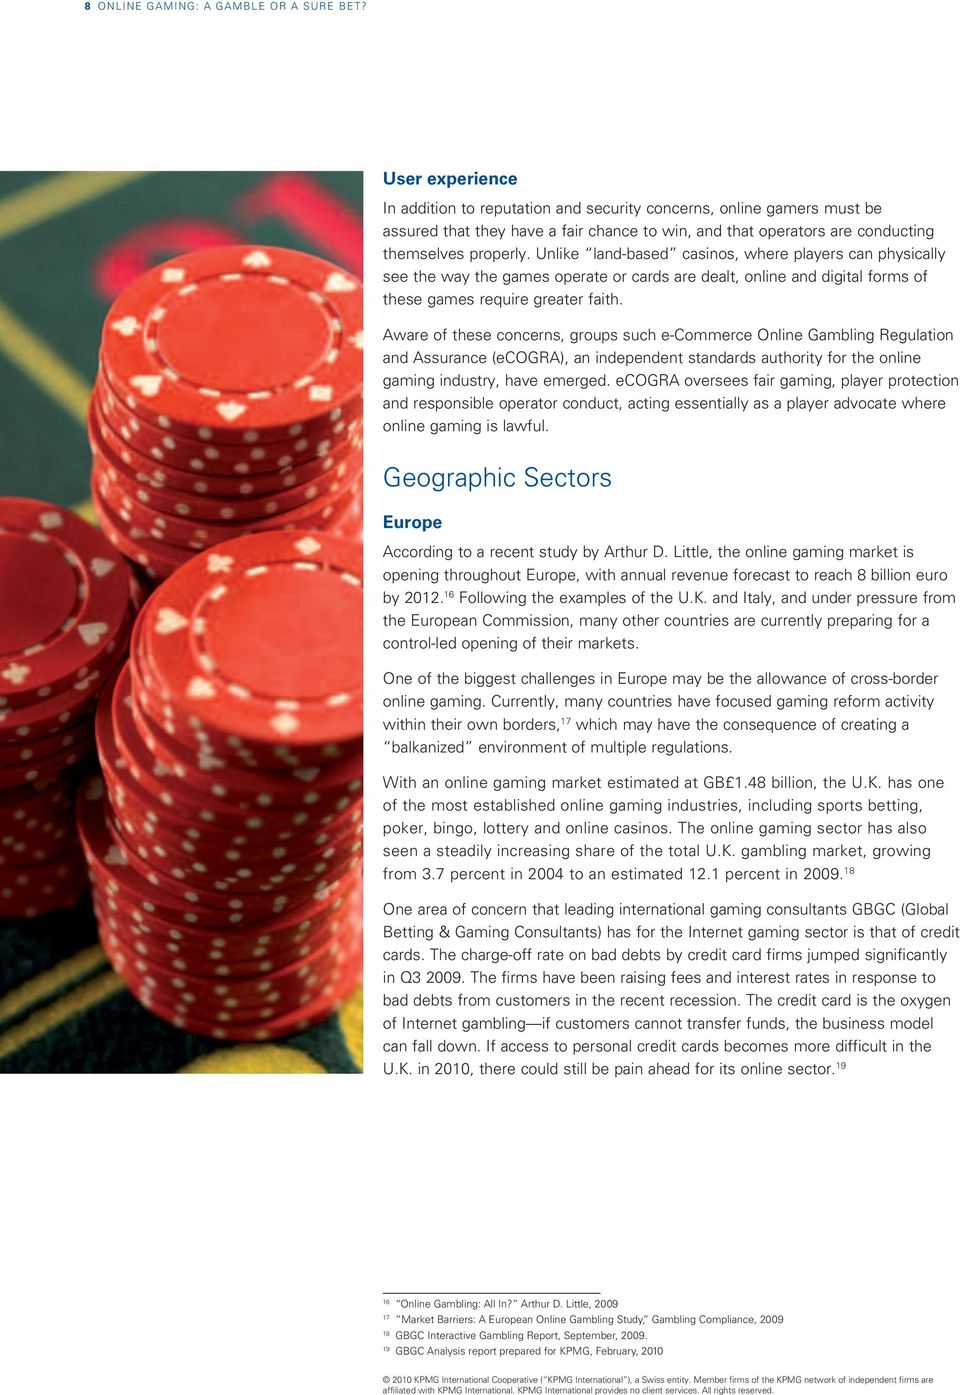 Unlike land-based casinos, where players can physically see the way the games operate or cards are dealt, online and digital forms of these games require greater faith.